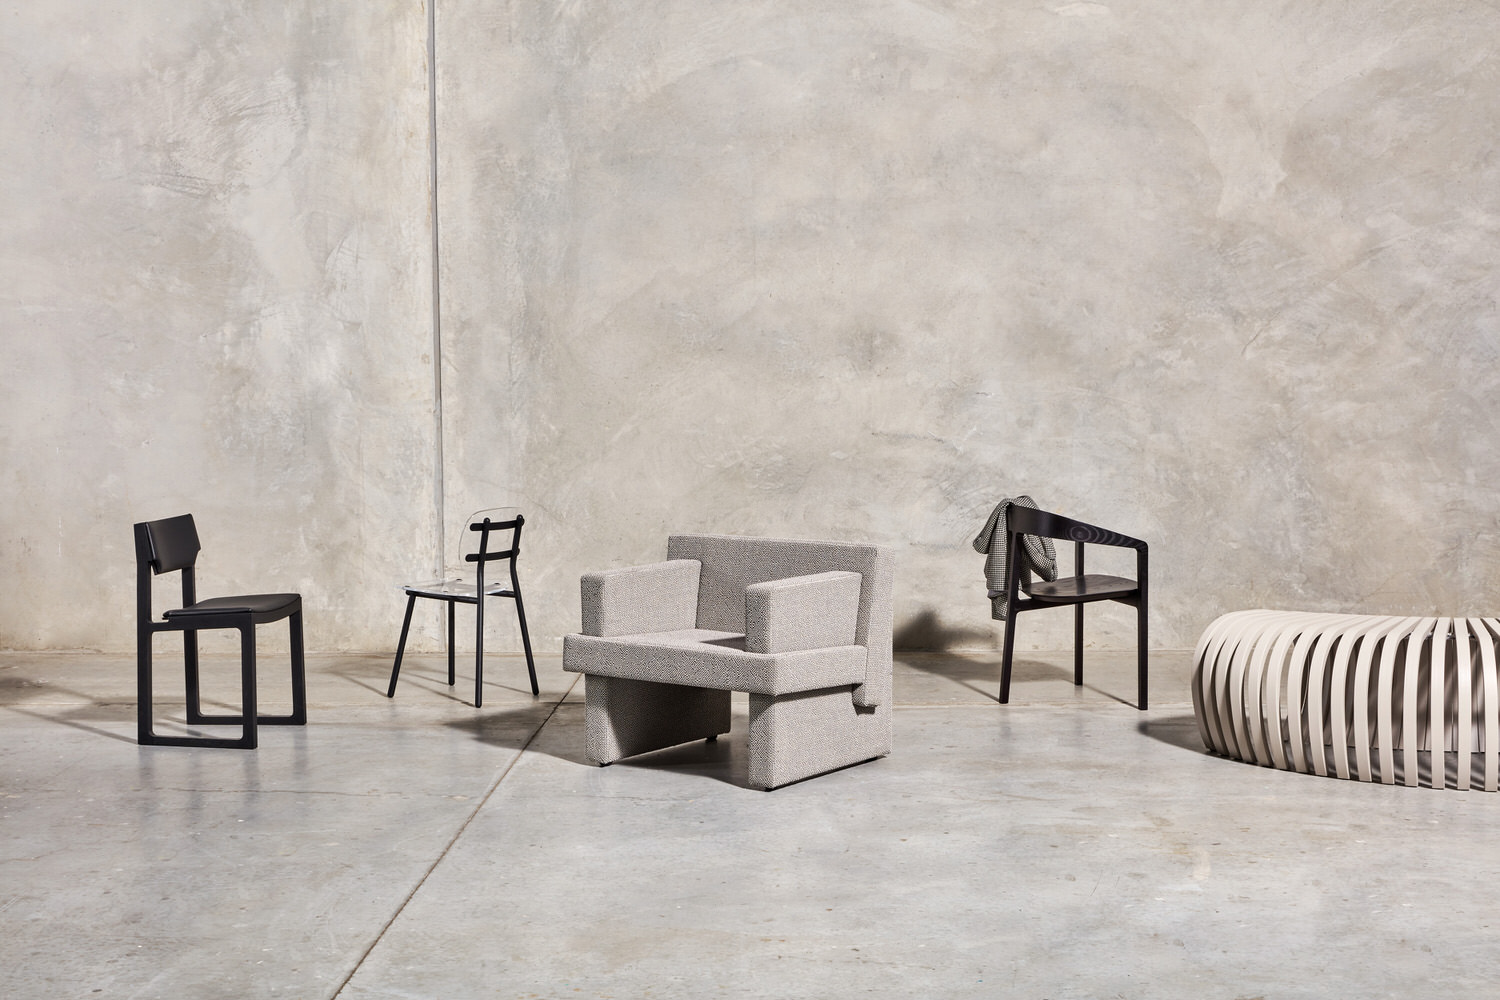 DesignByThem + GibsonKarlo Seating Collection, Australian Design, Photo Pete Daly   Yellowtrace